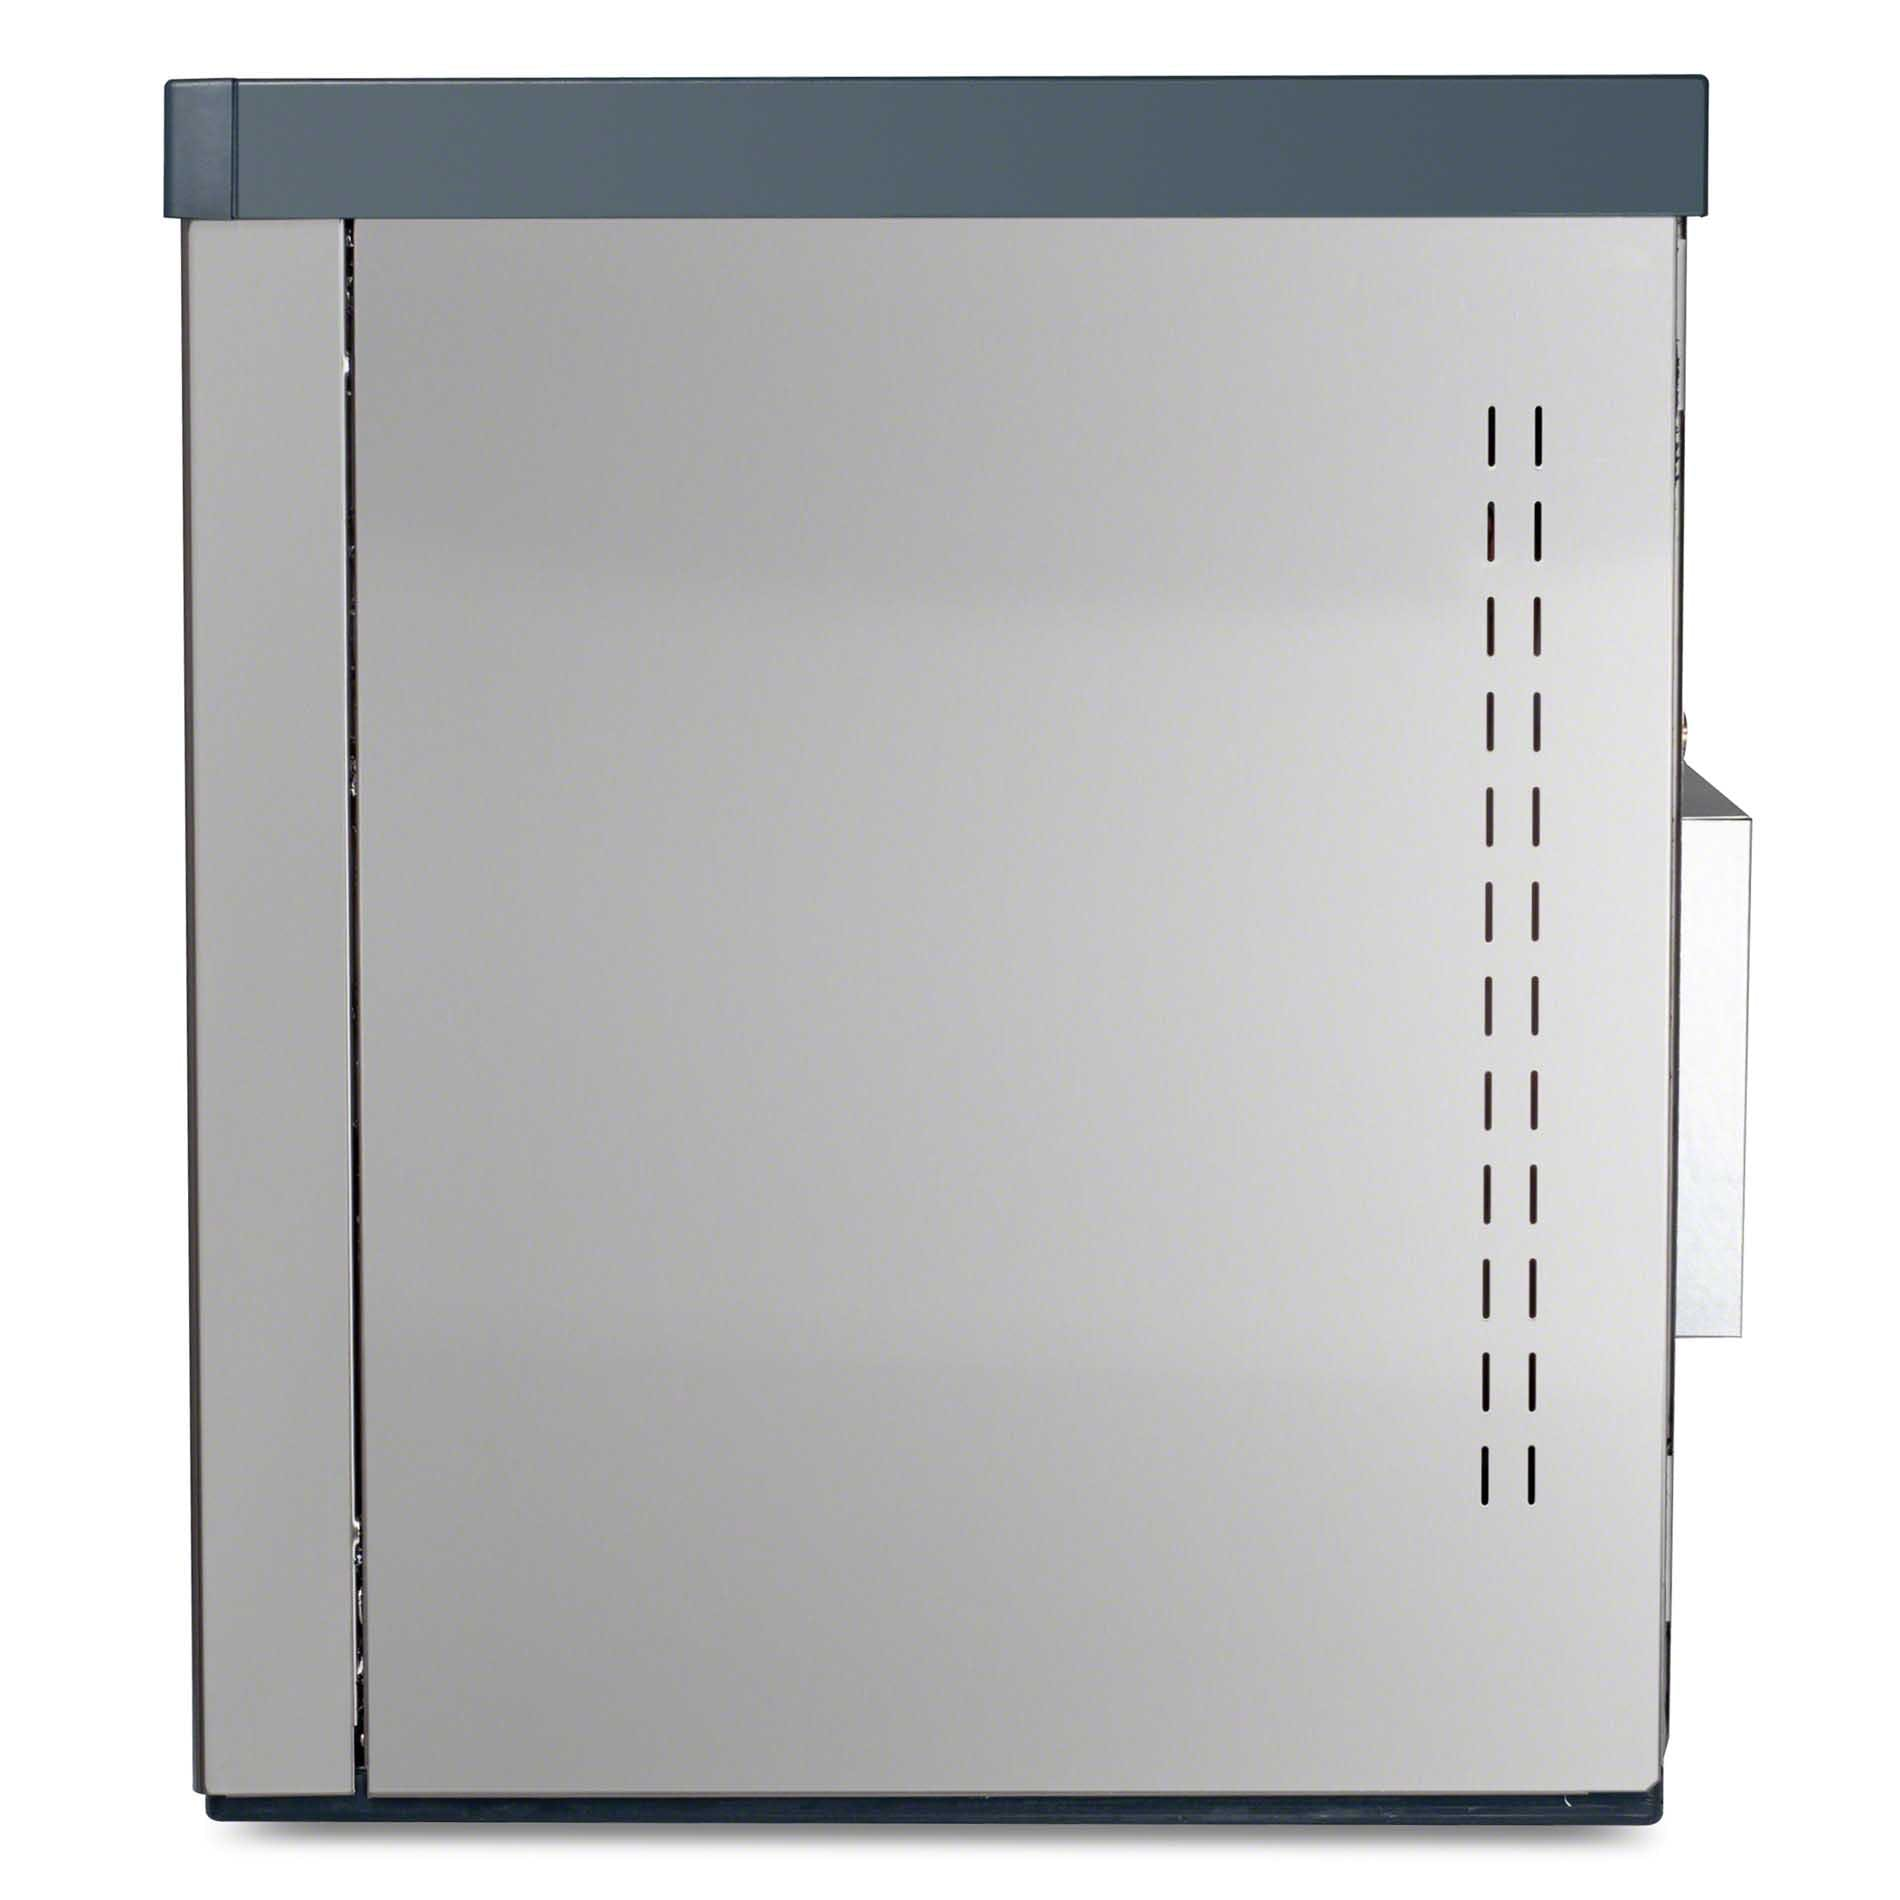 Scotsman - C1448SW-32A 1444 lb Half Size Cube Ice Machine - Prodigy Series - sold by Food Service Warehouse